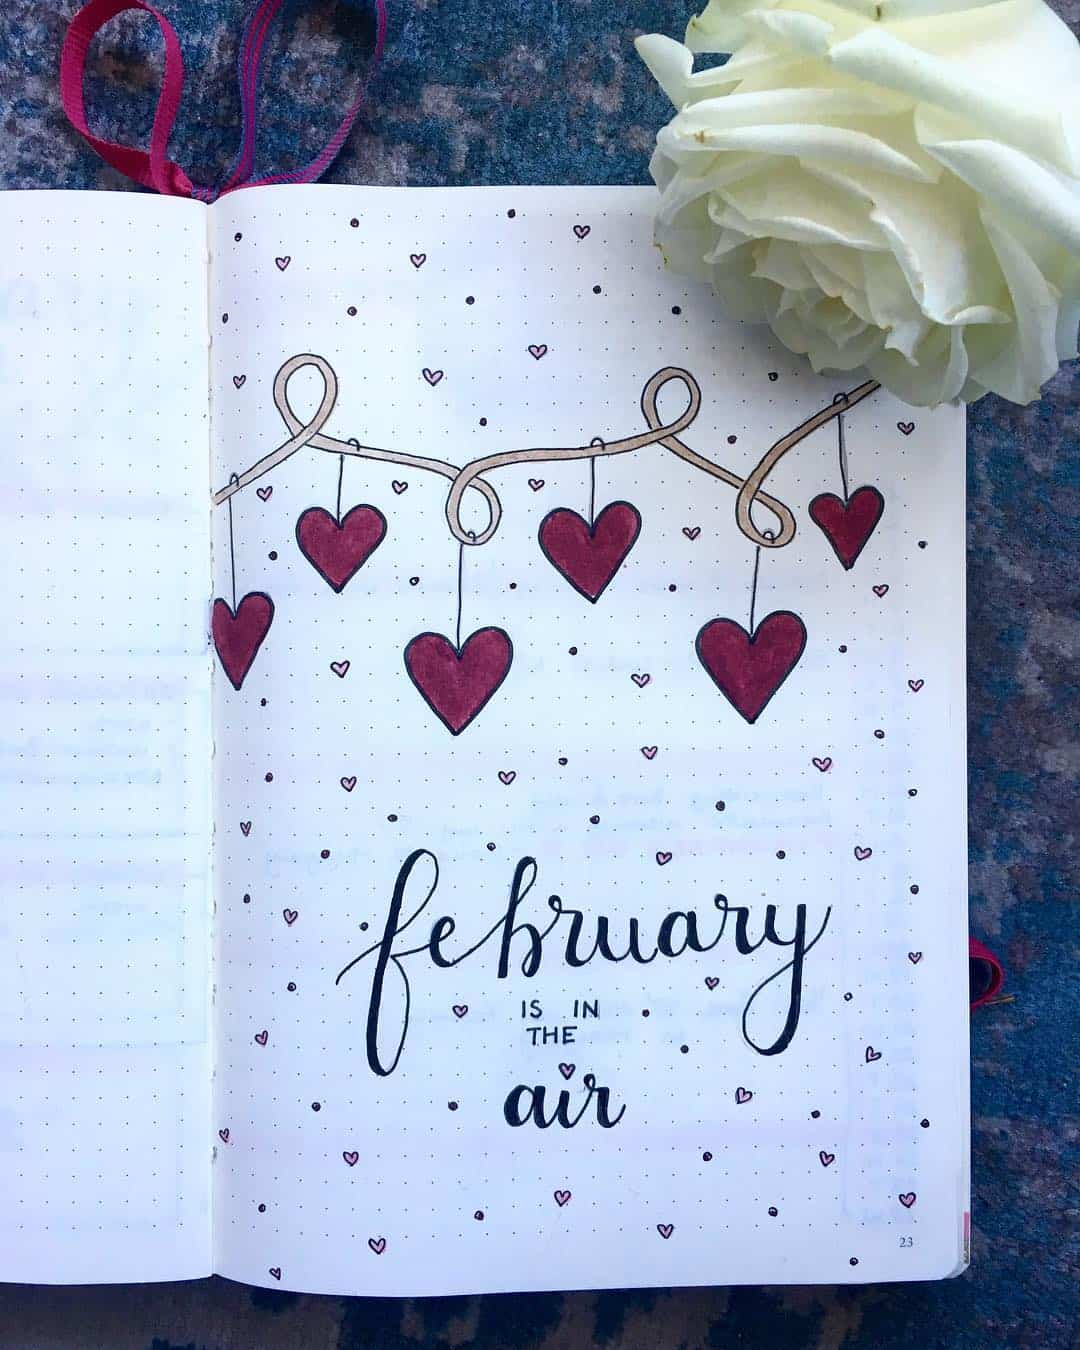 Heart Garland February Cover Page